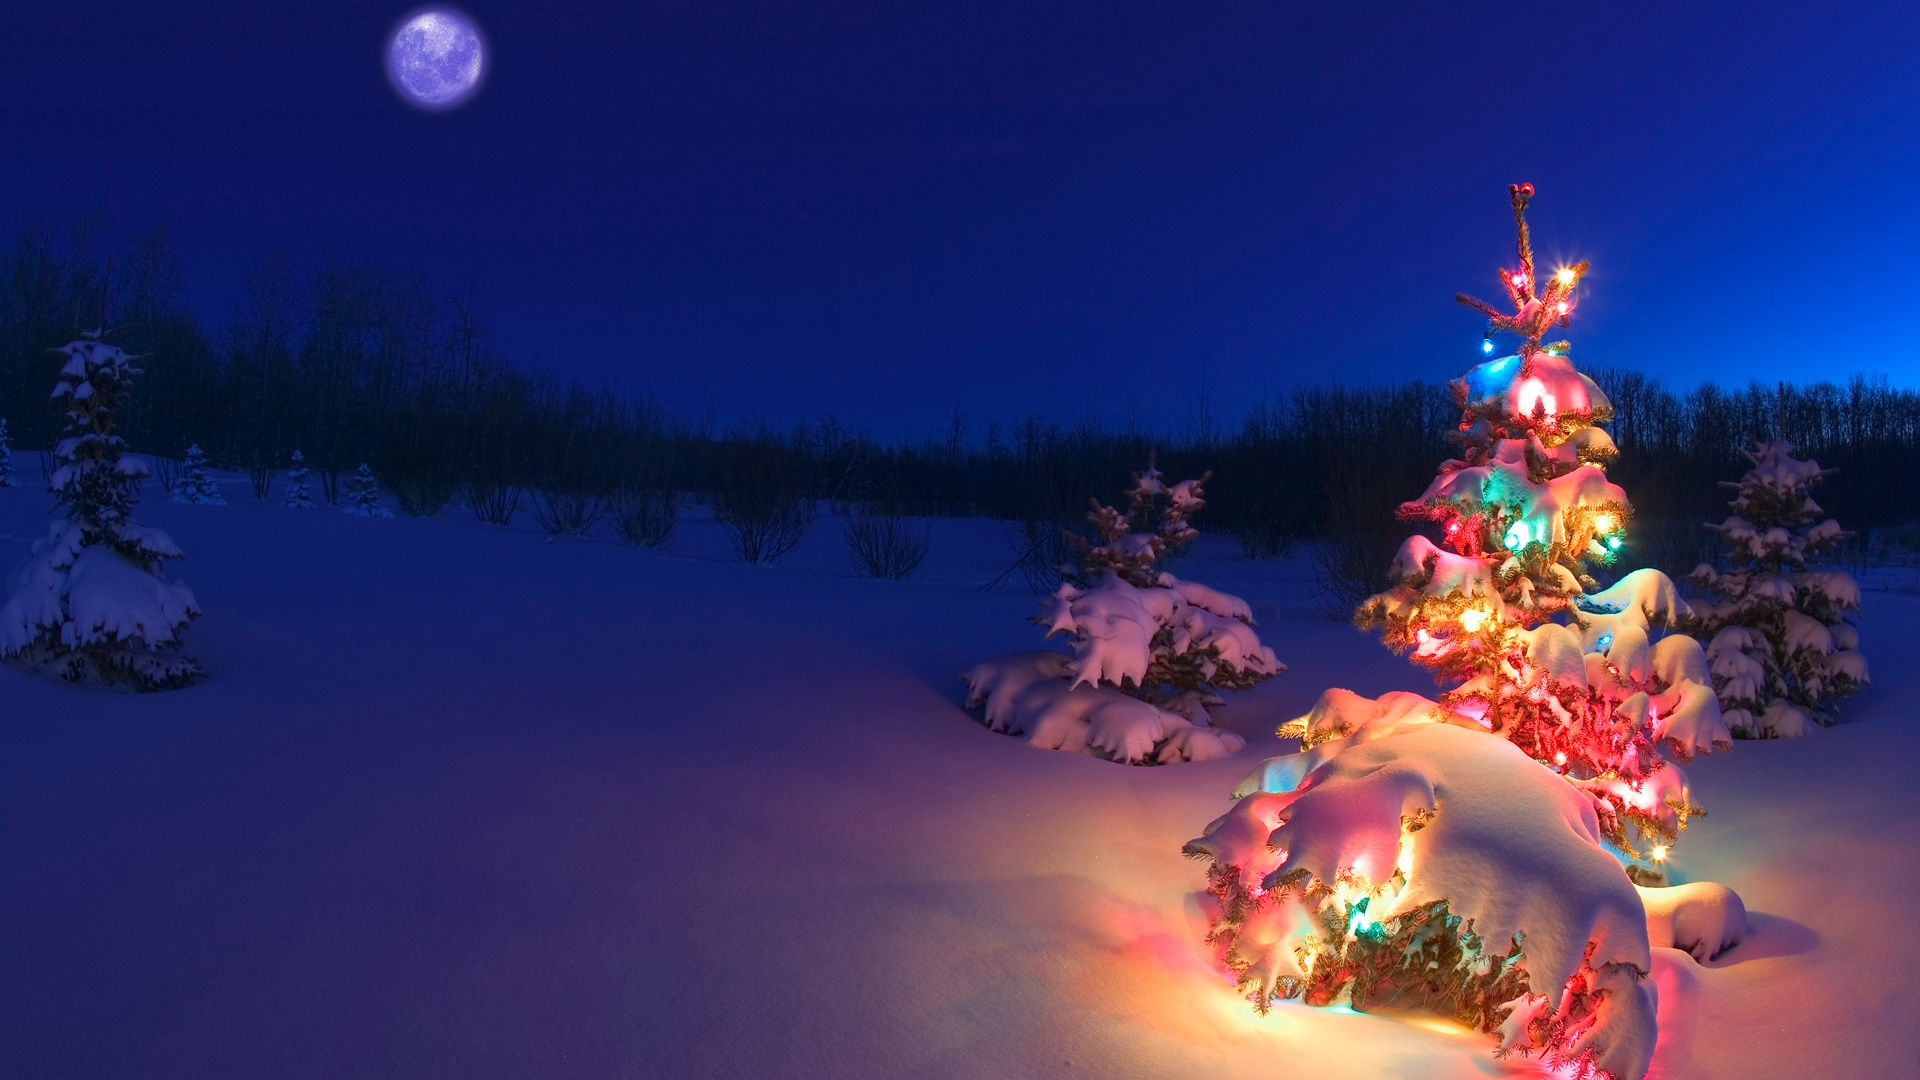 download merry christmas hd image merry christmas hd wallpapers